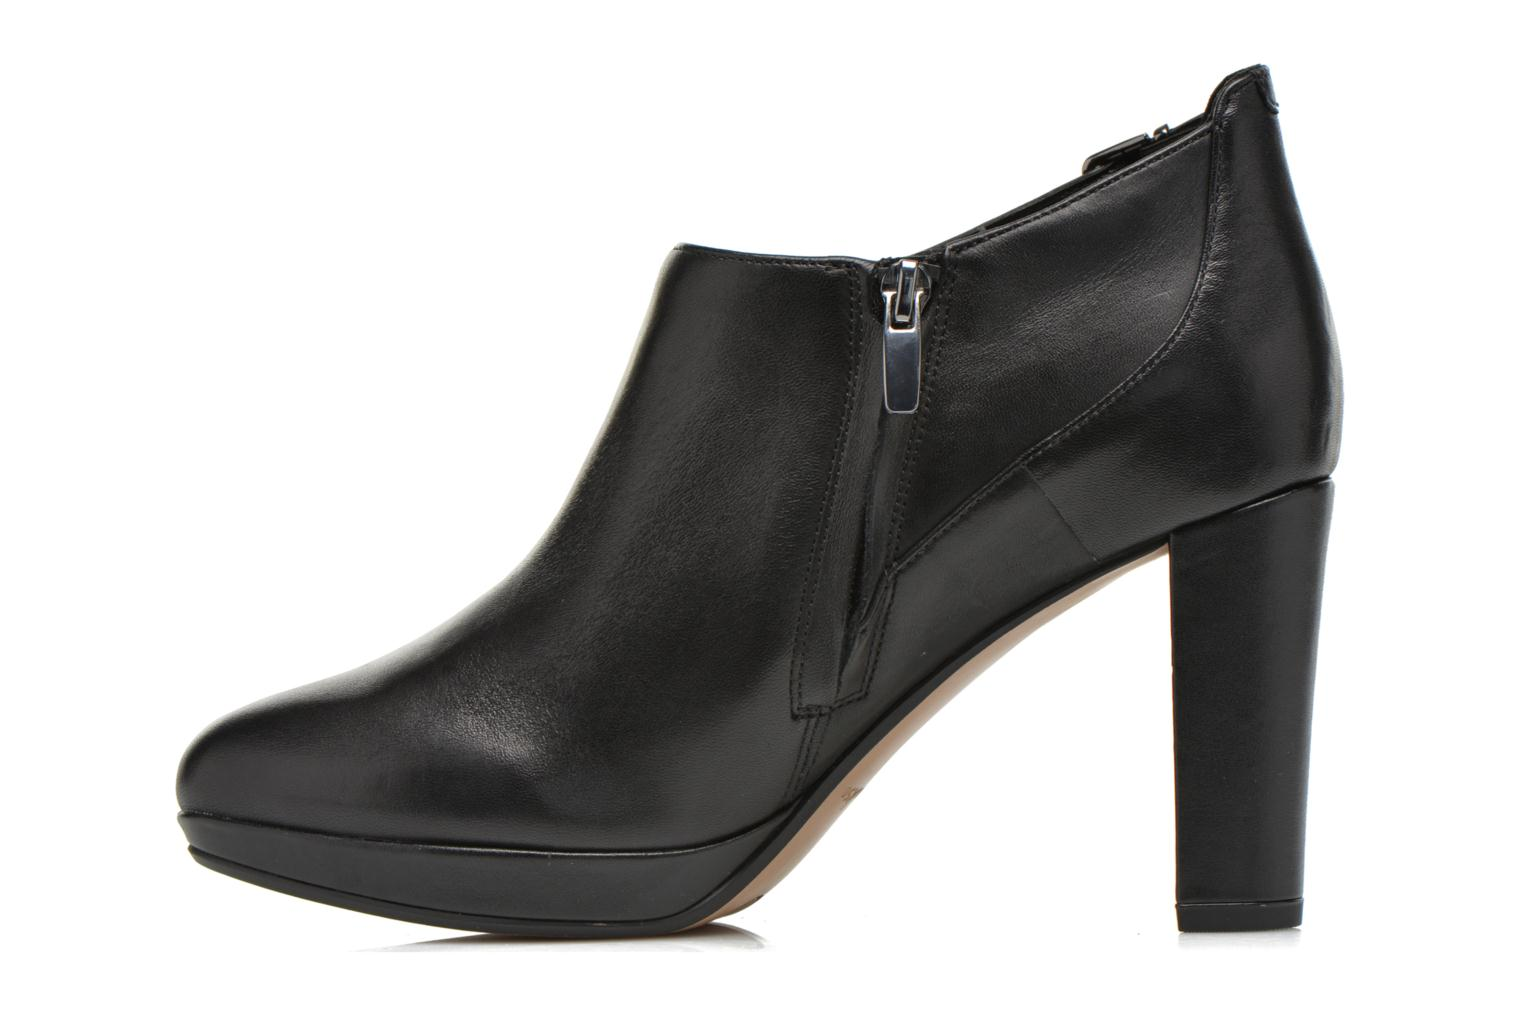 Kendra Spice Black leather